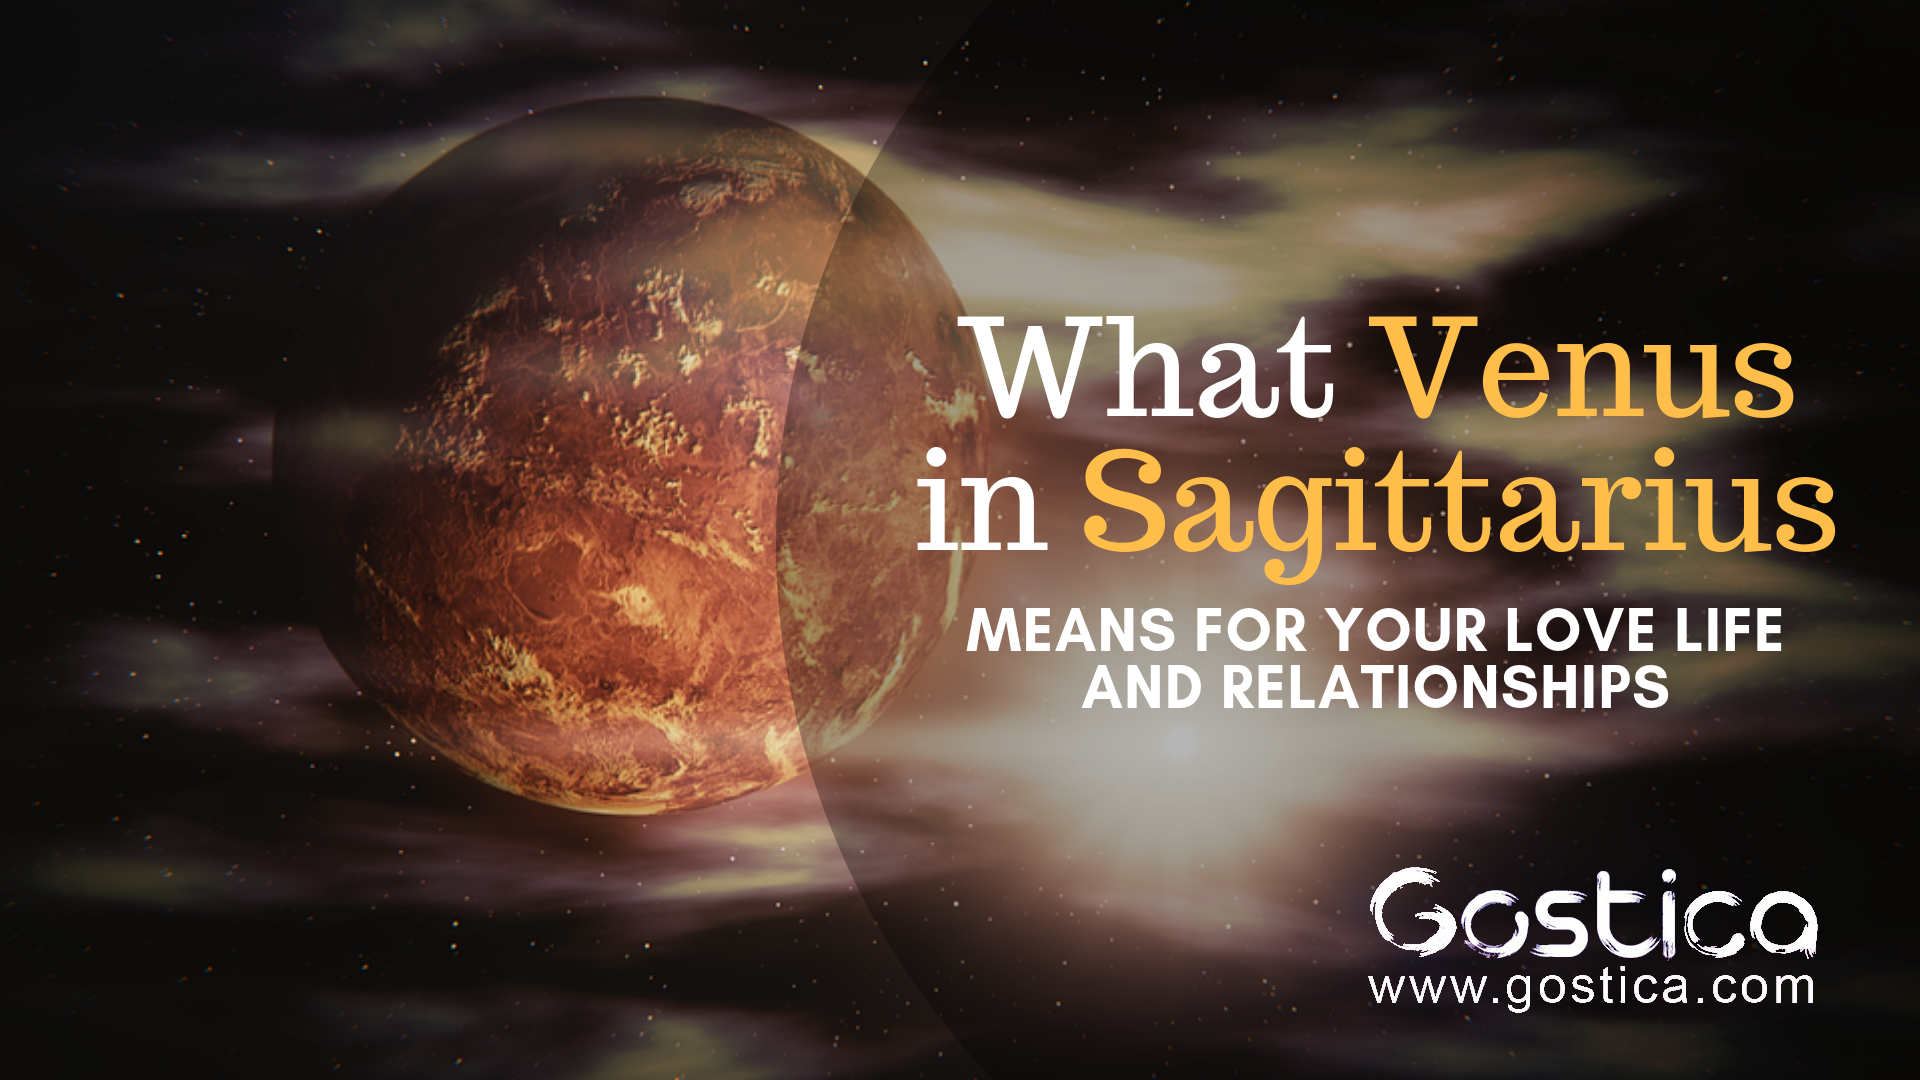 What The Venus In Sagittarius Means For Your Love Life And